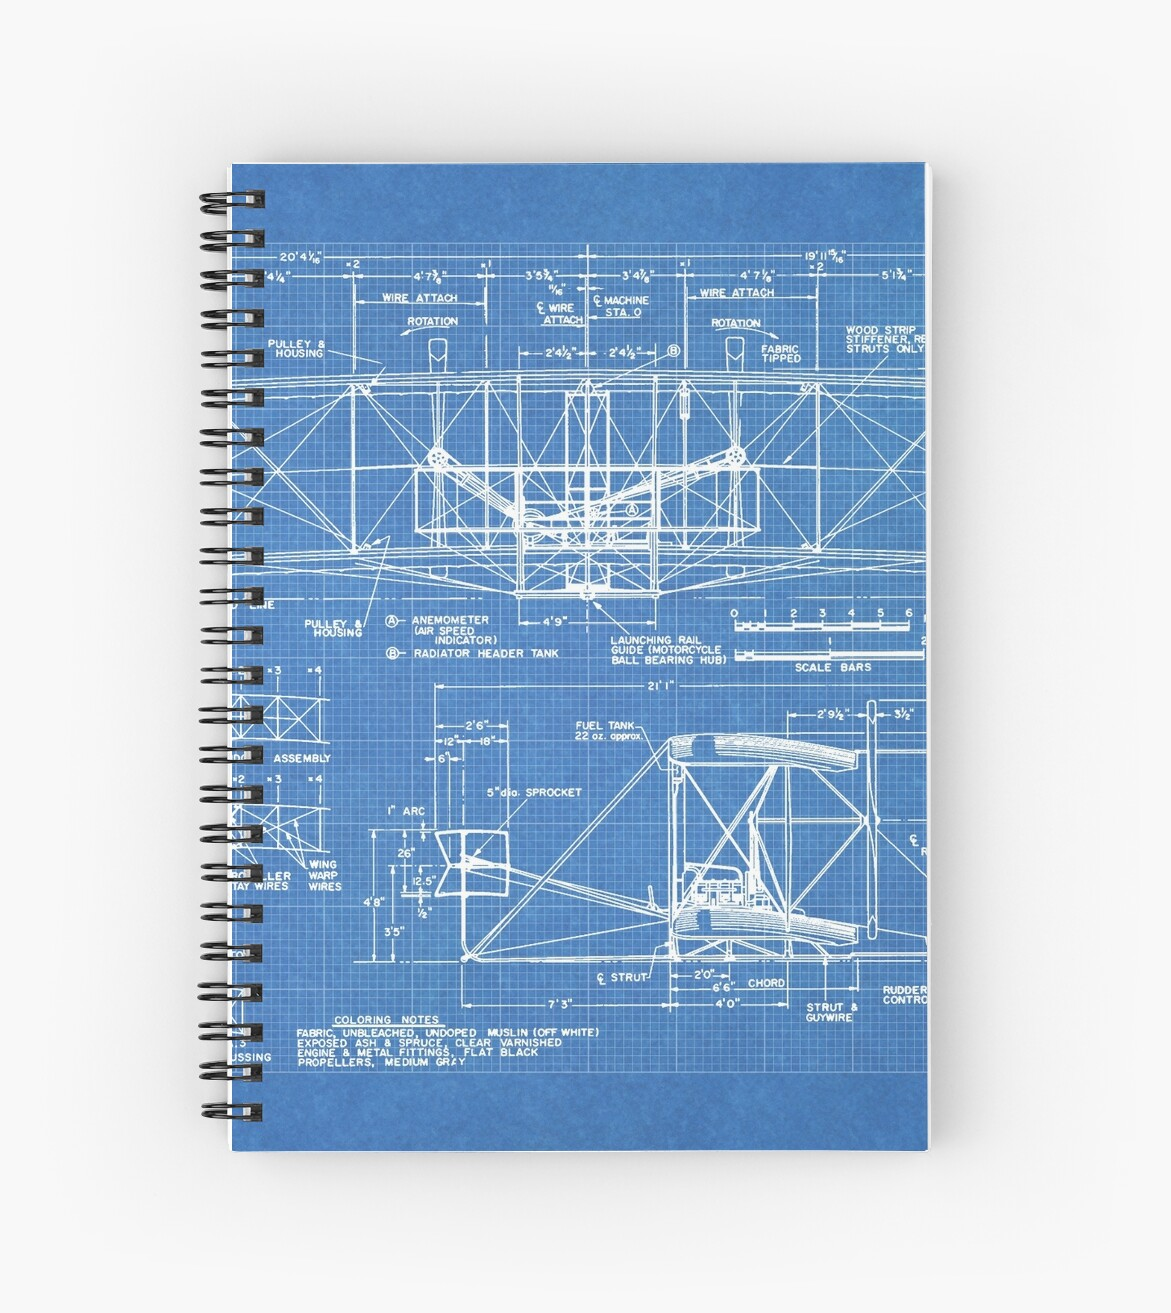 1903 wright flyer airplane invention patent art blueprint spiral 1903 wright flyer airplane invention patent art blueprint by steve chambers malvernweather Choice Image